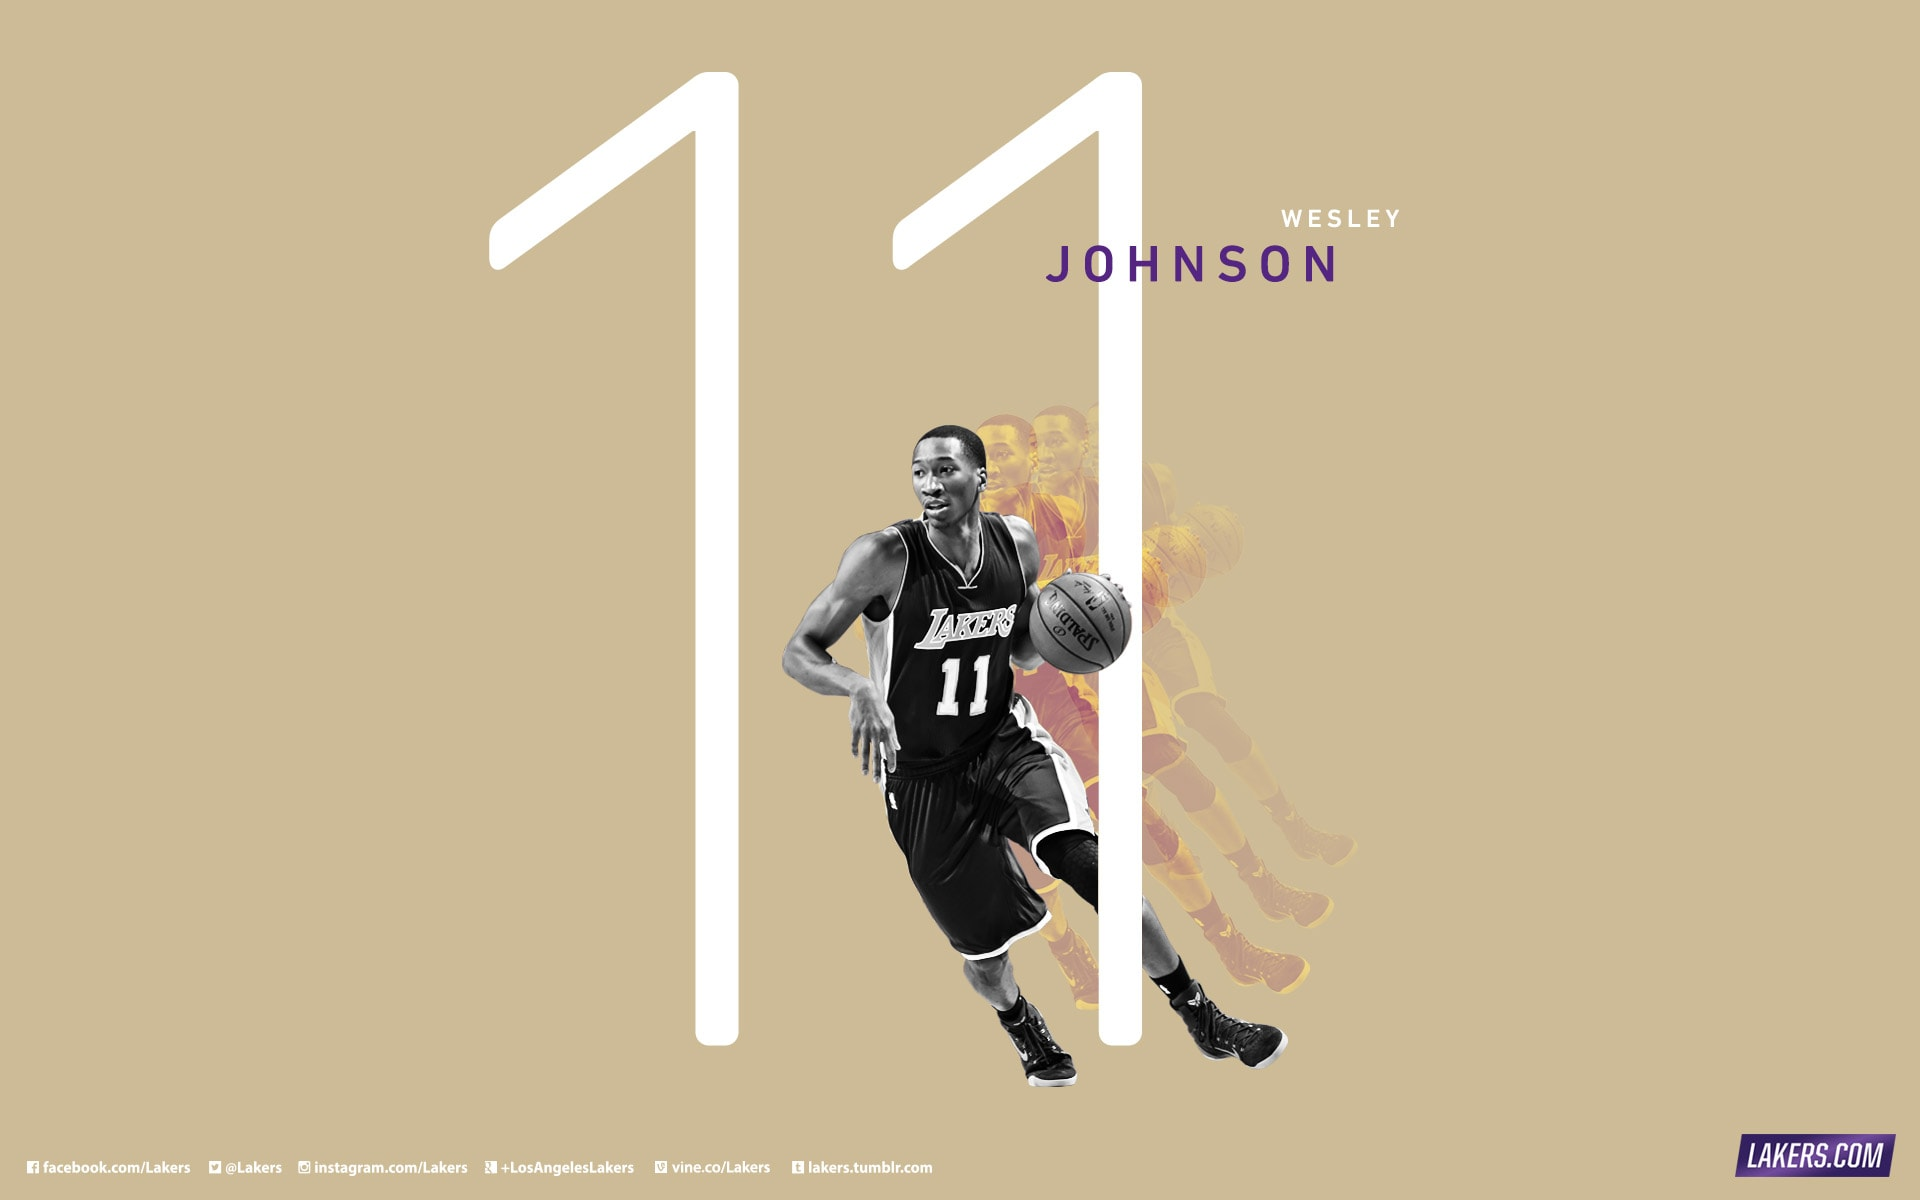 Wesley Johnson Player Wallpaper